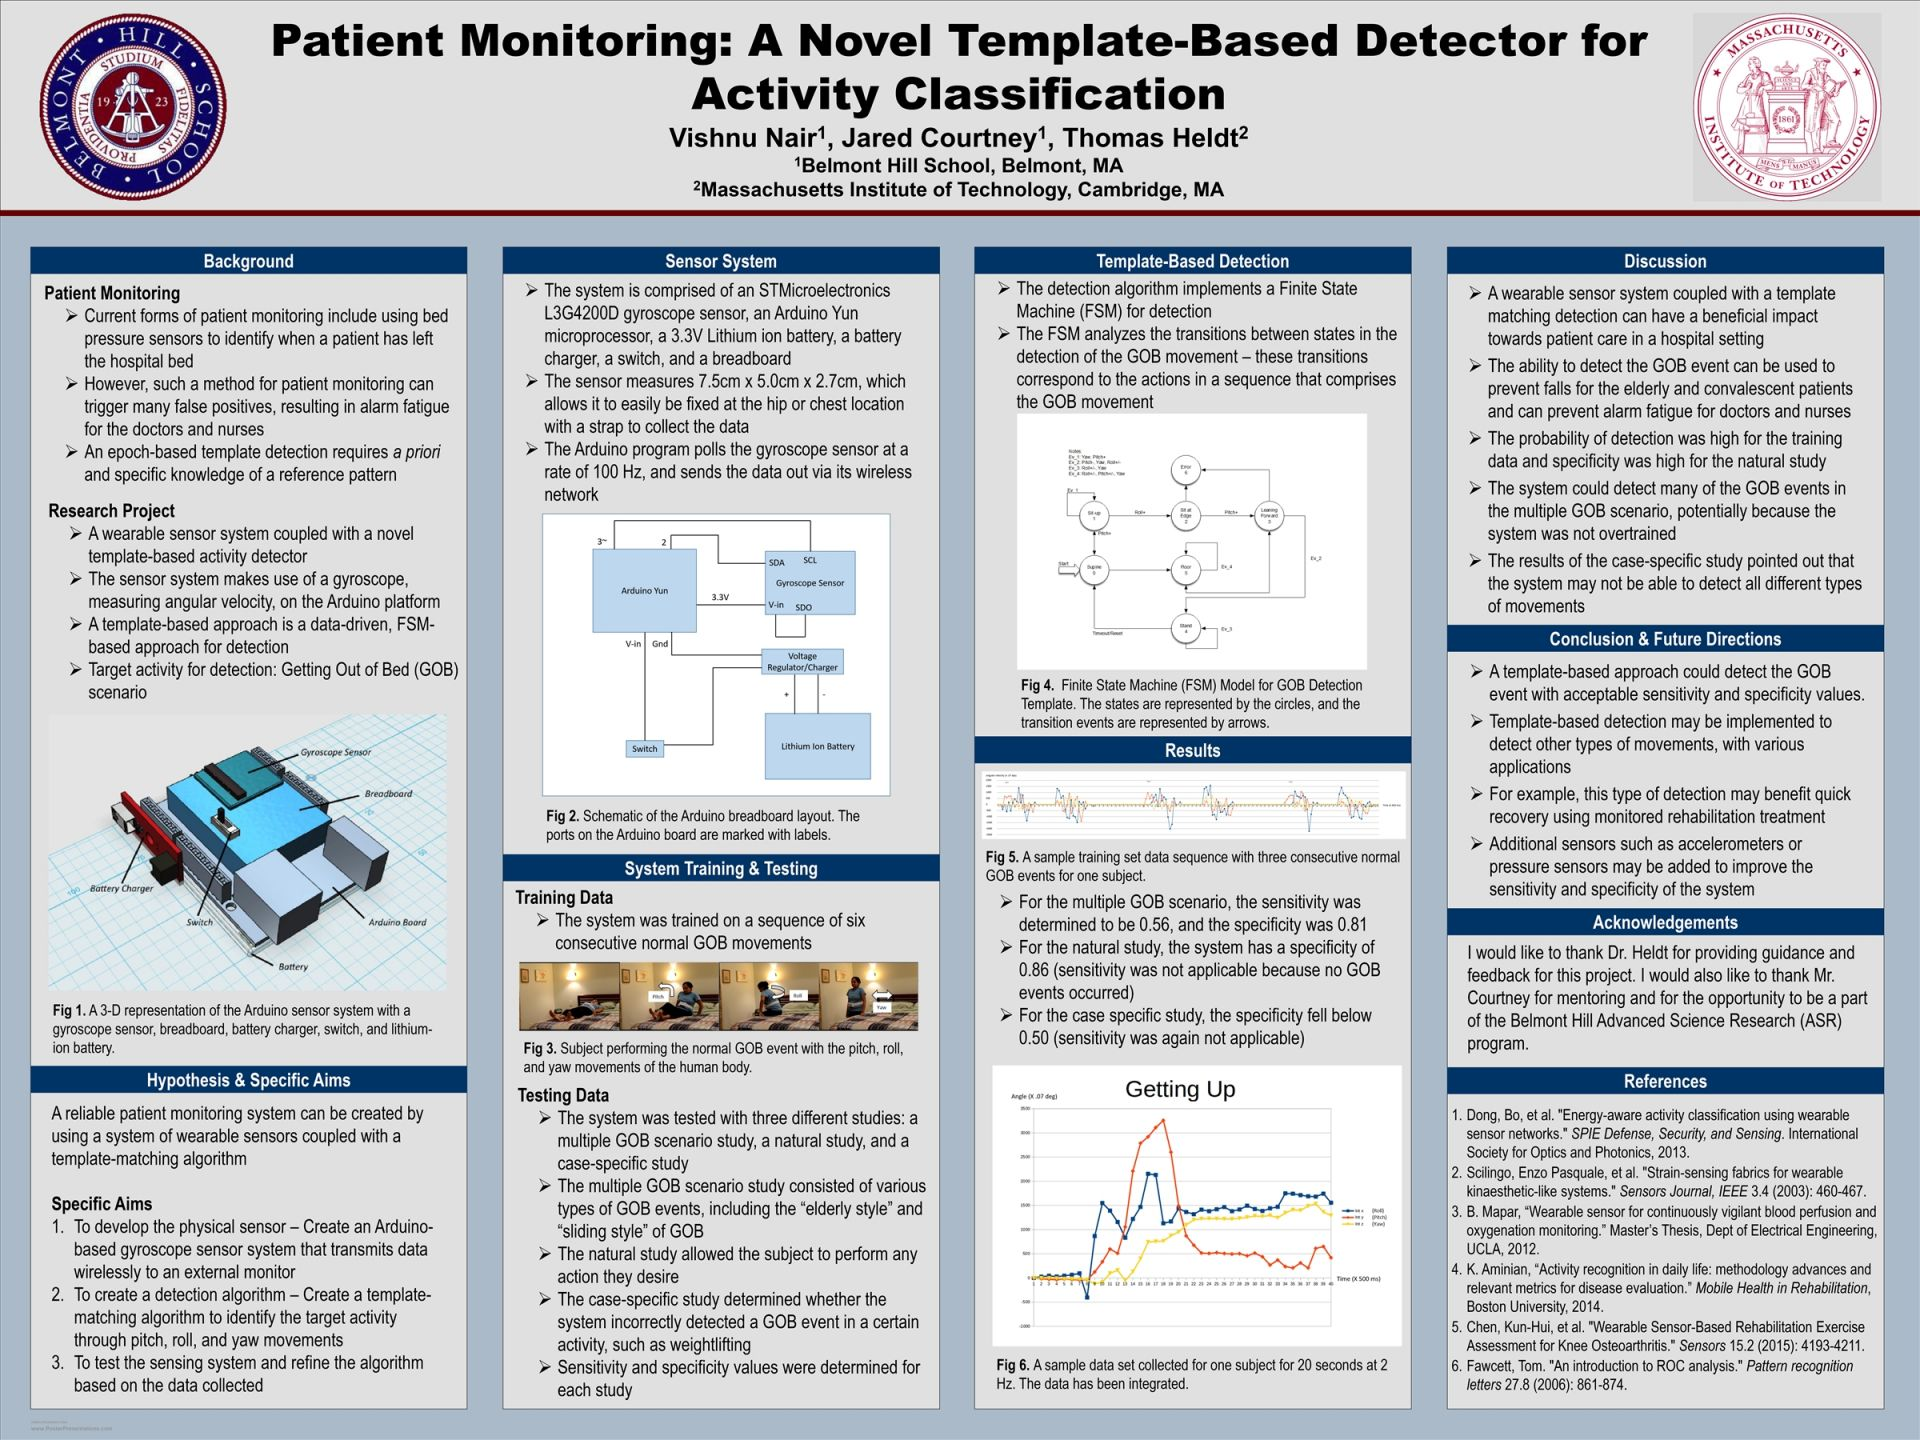 Vishnu Nair-Patient Monitoring-A Novel Template-Based Detector for Activity Classification